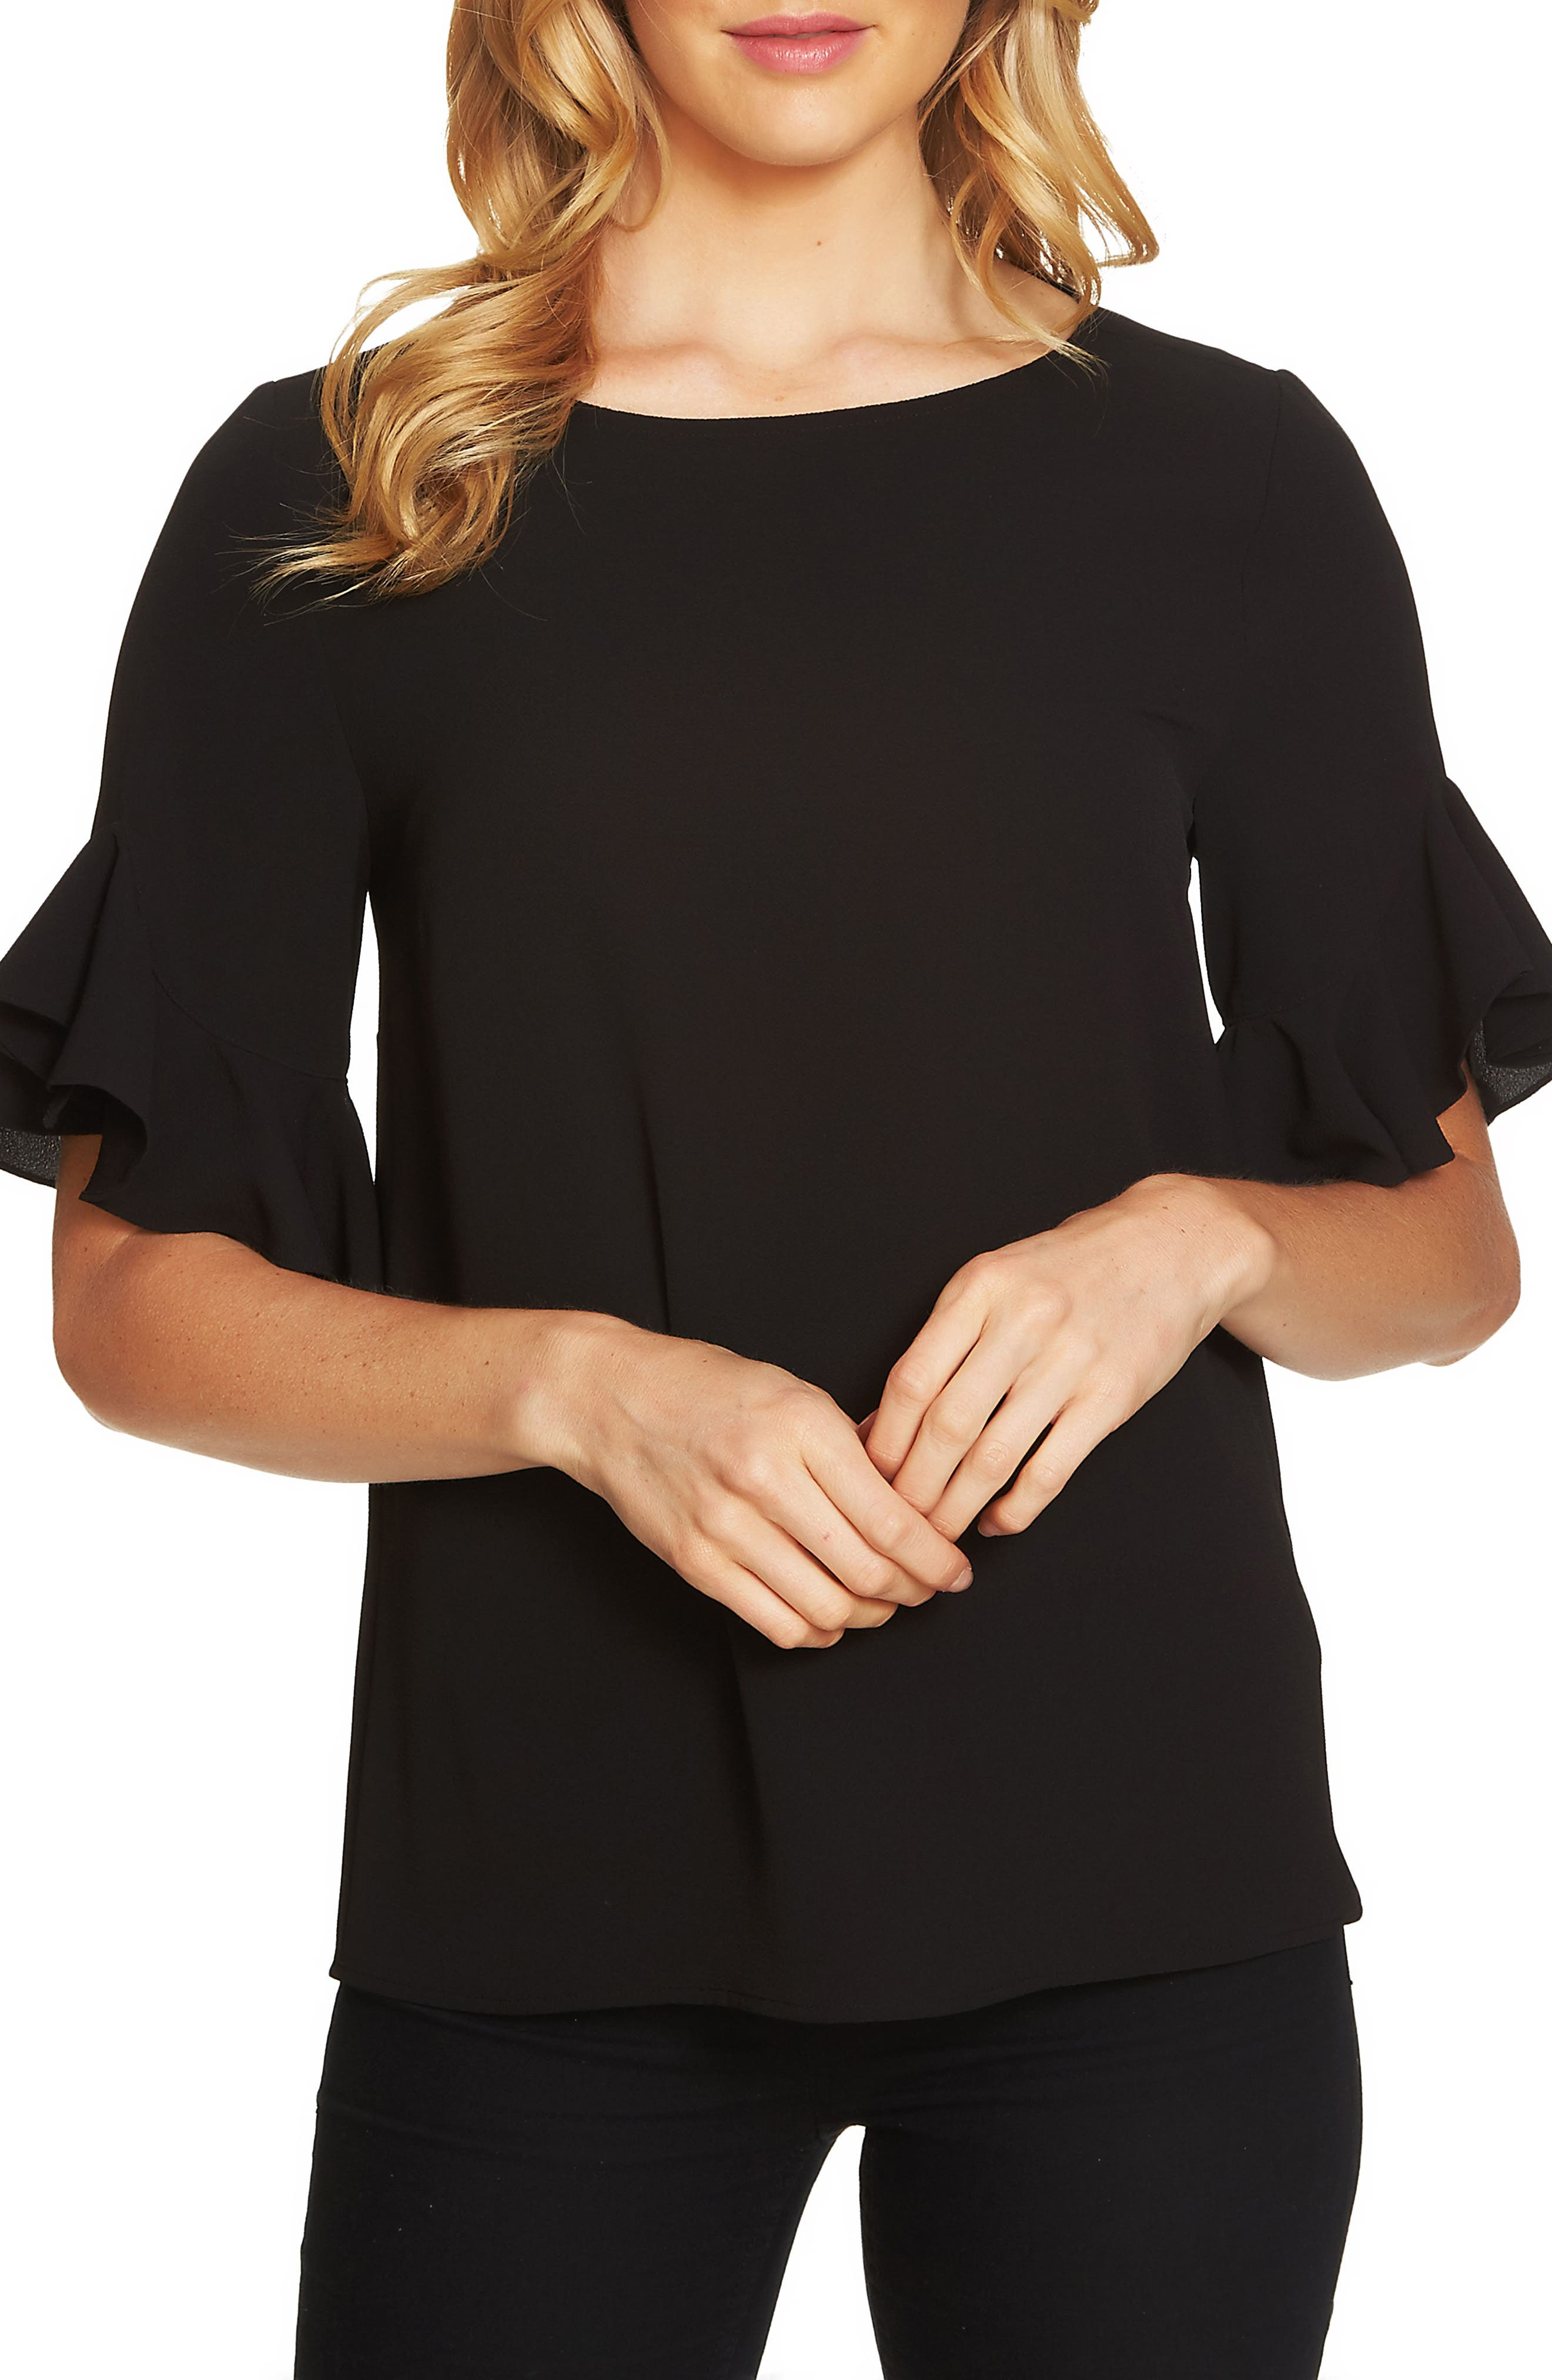 Ruffle Sleeve Blouse,                             Main thumbnail 1, color,                             Rich Black